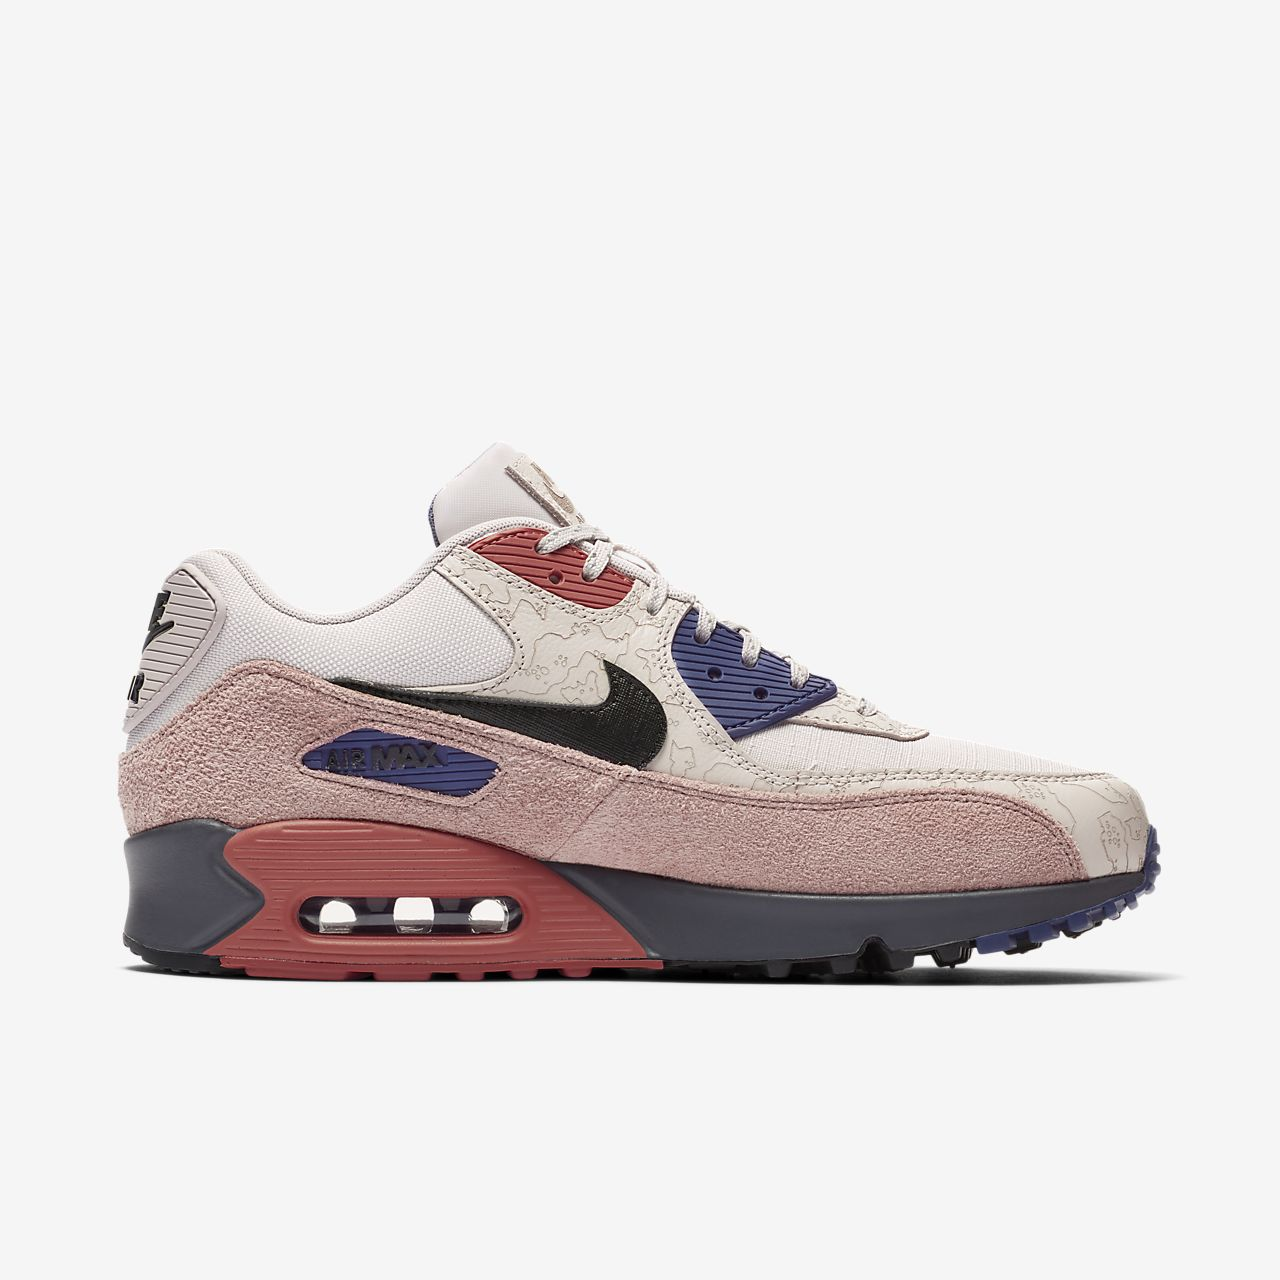 for sale nike air max 90 philippines